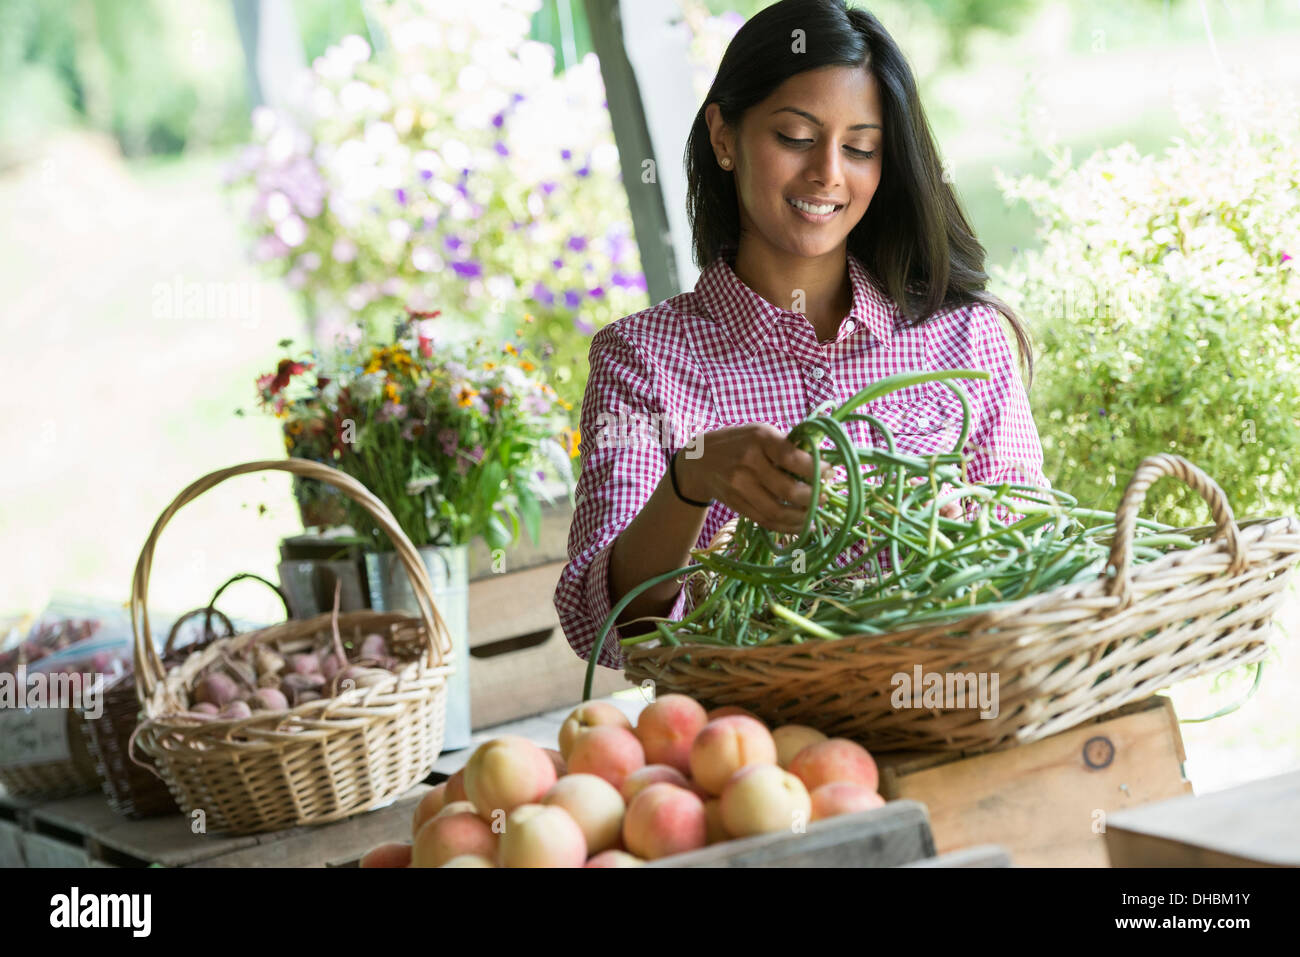 A farm stand with fresh organic vegetables and fruit.  A woman holding bunches of carrots. Stock Photo